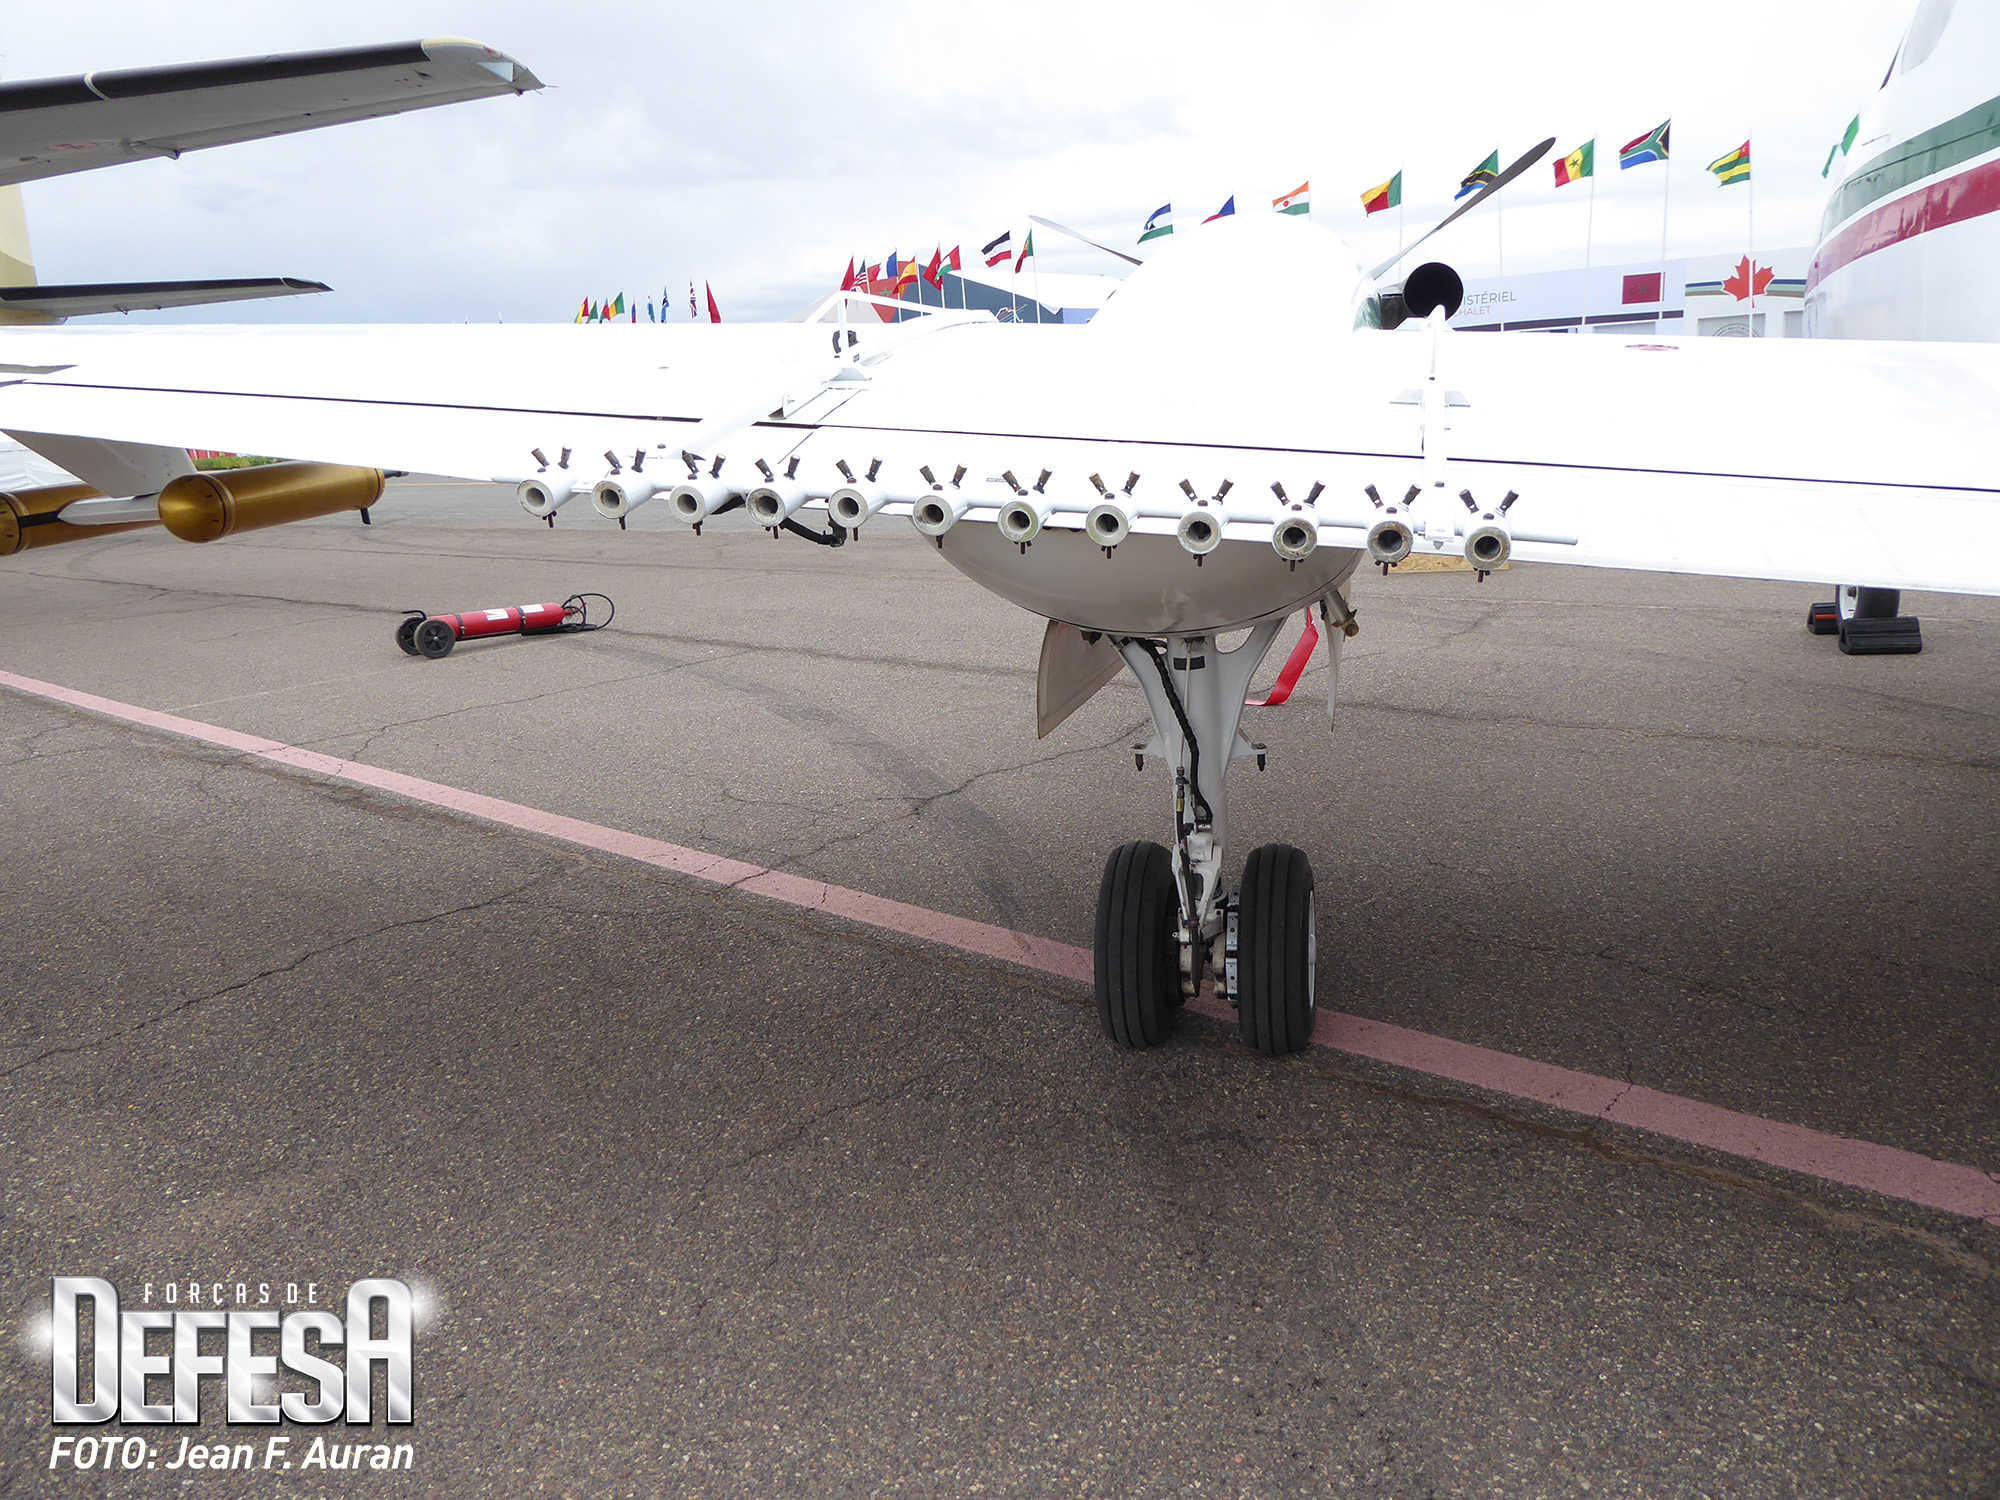 Cloud-seeding-equipement-on-King-air-200